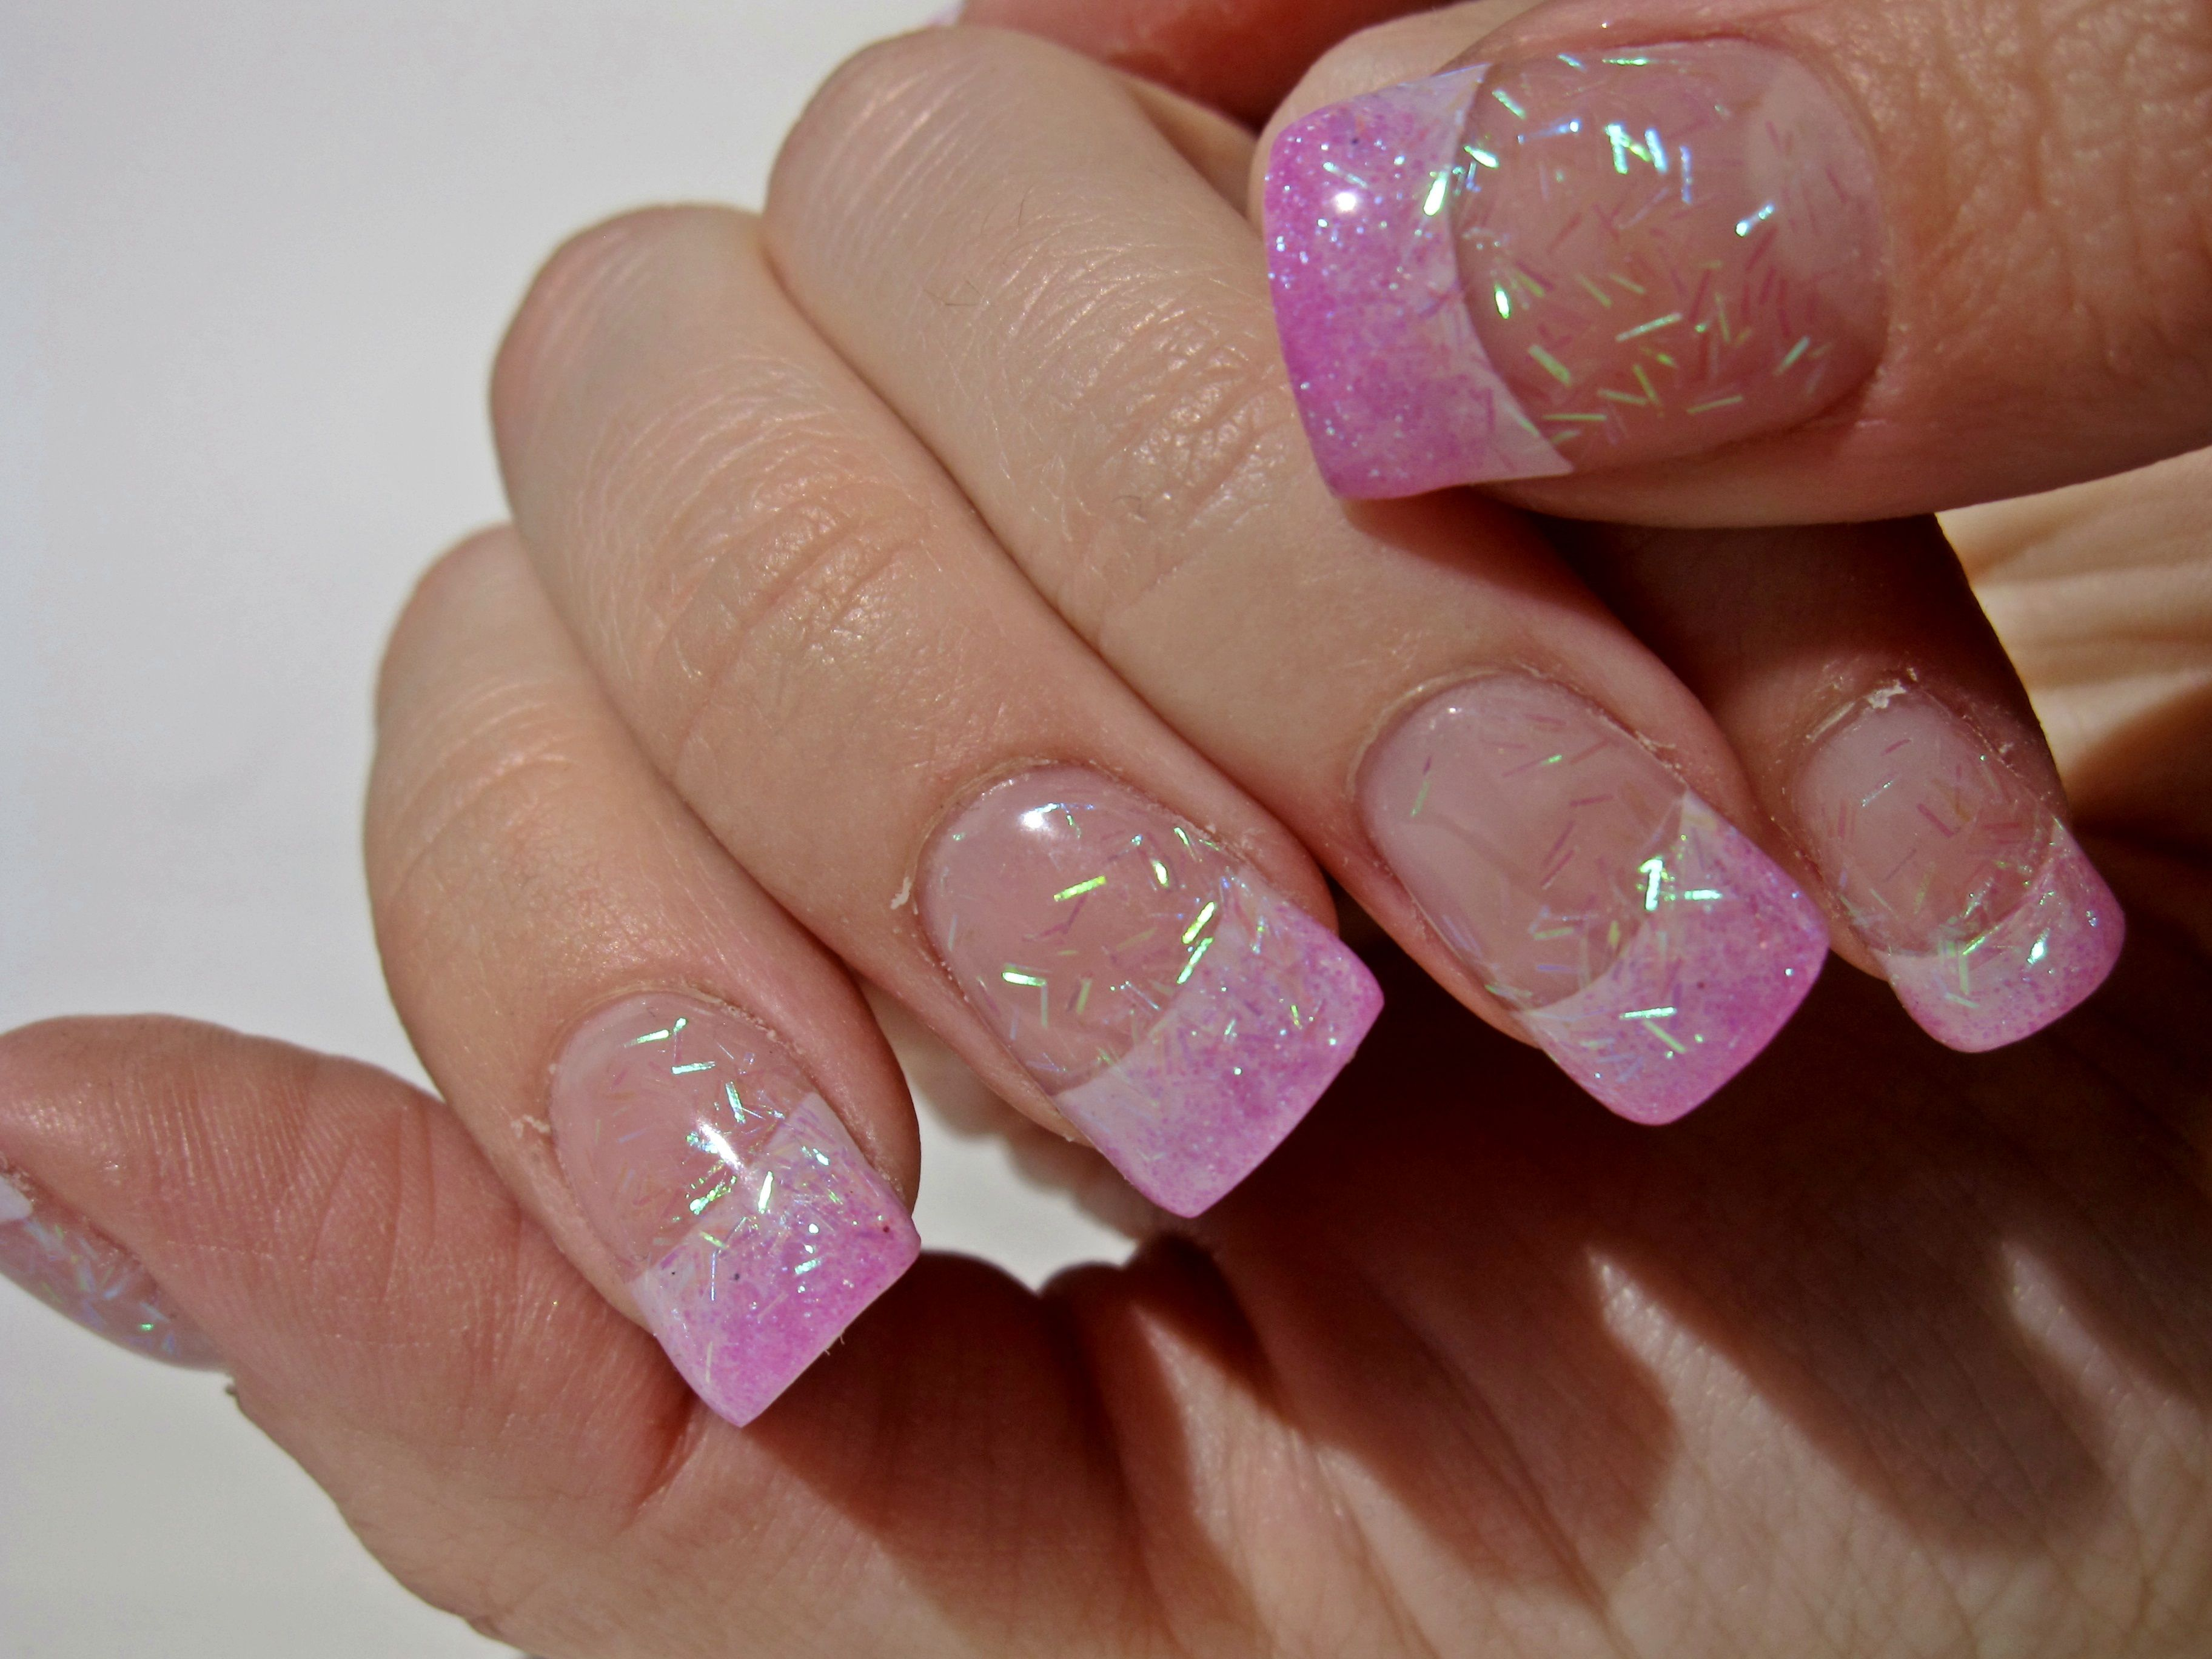 Iridescent Pink Glitter Fade Acrylic Clear Acrylic Nails Fake Nails Walmart Turquoise Nails